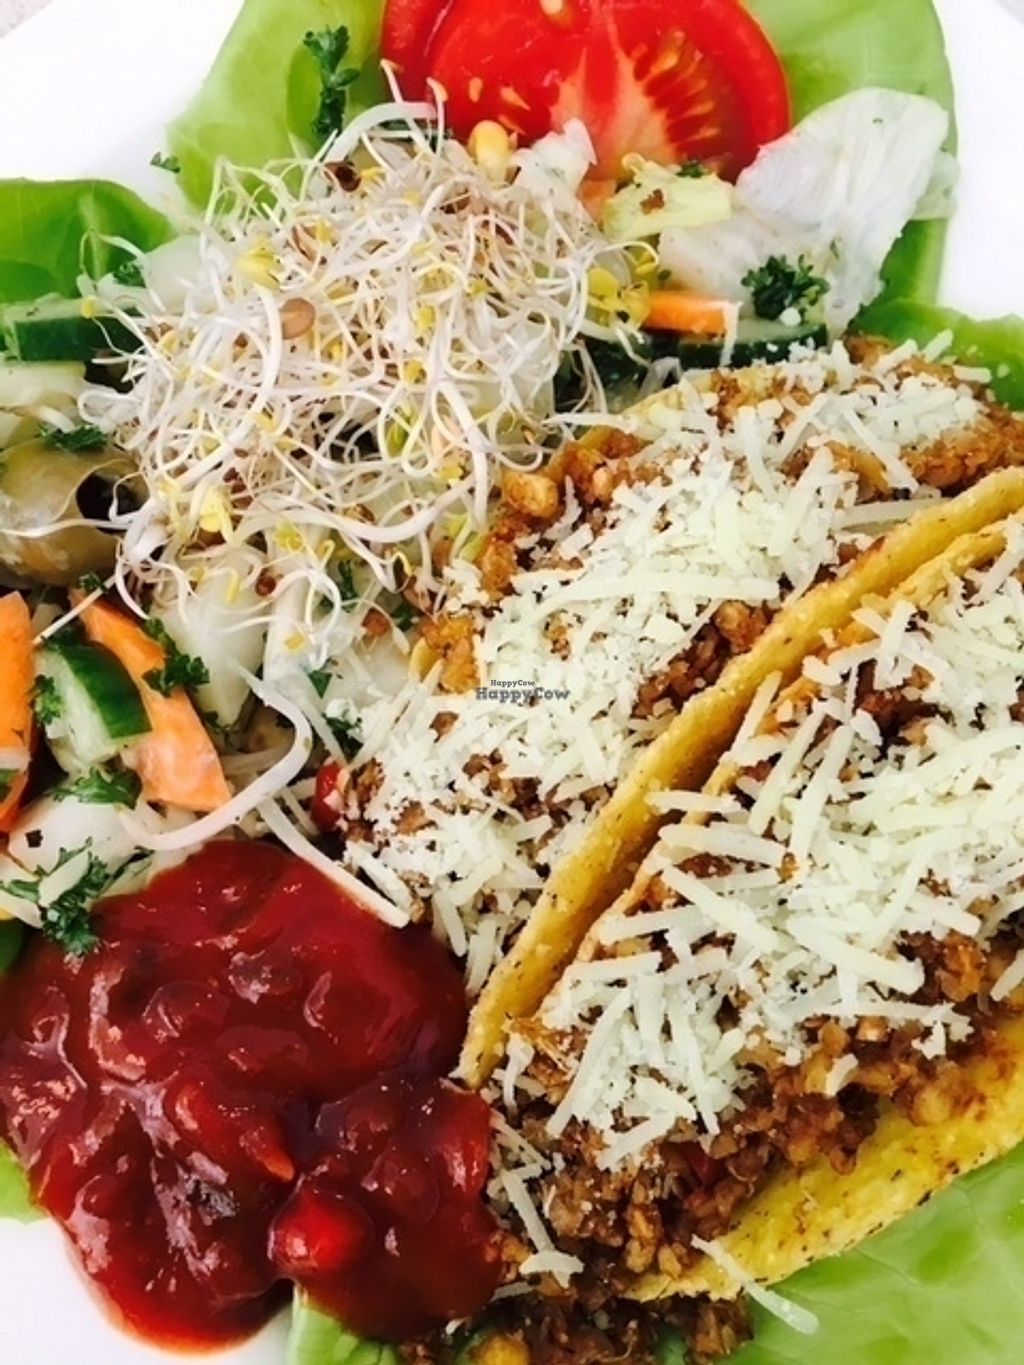 """Photo of CLOSED: Veganity Foods  by <a href=""""/members/profile/VeganityFoods"""">VeganityFoods</a> <br/>Meatless Minc Tacos by VeganityFoods <br/> October 13, 2016  - <a href='/contact/abuse/image/61705/181872'>Report</a>"""